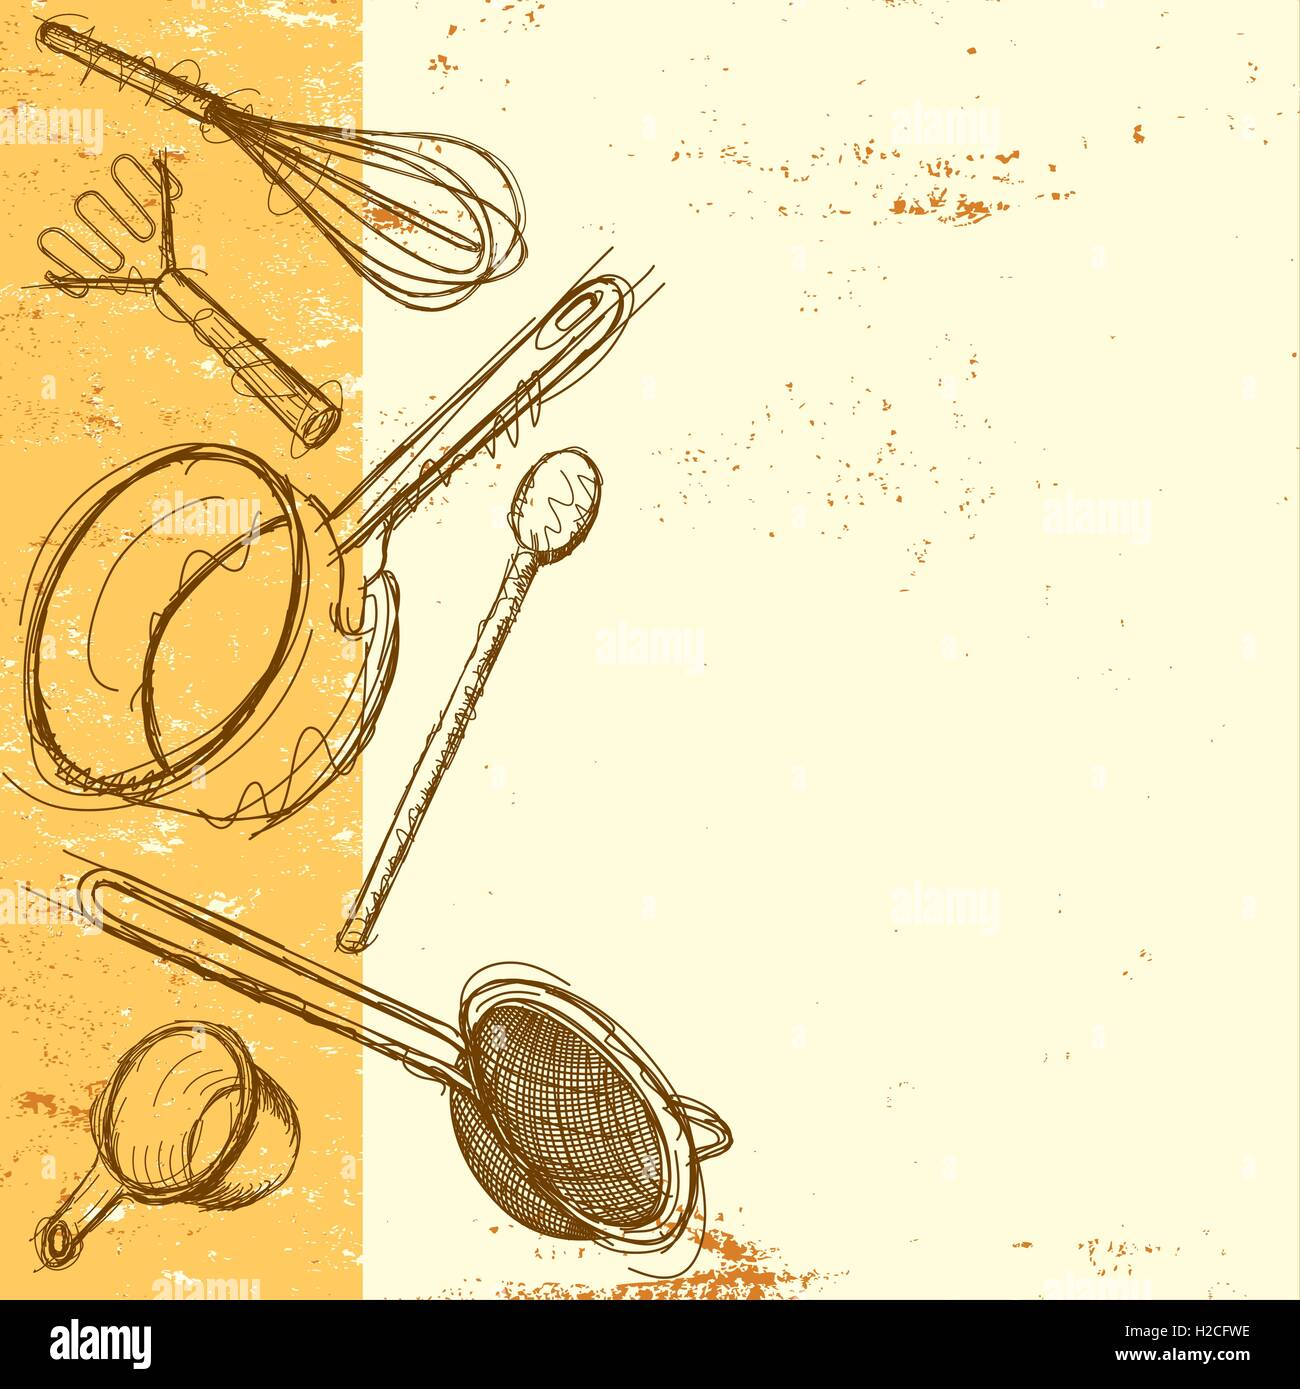 Kitchen Utensils Background cooking utensil background sketchy, hand drawn kitchen utensils on